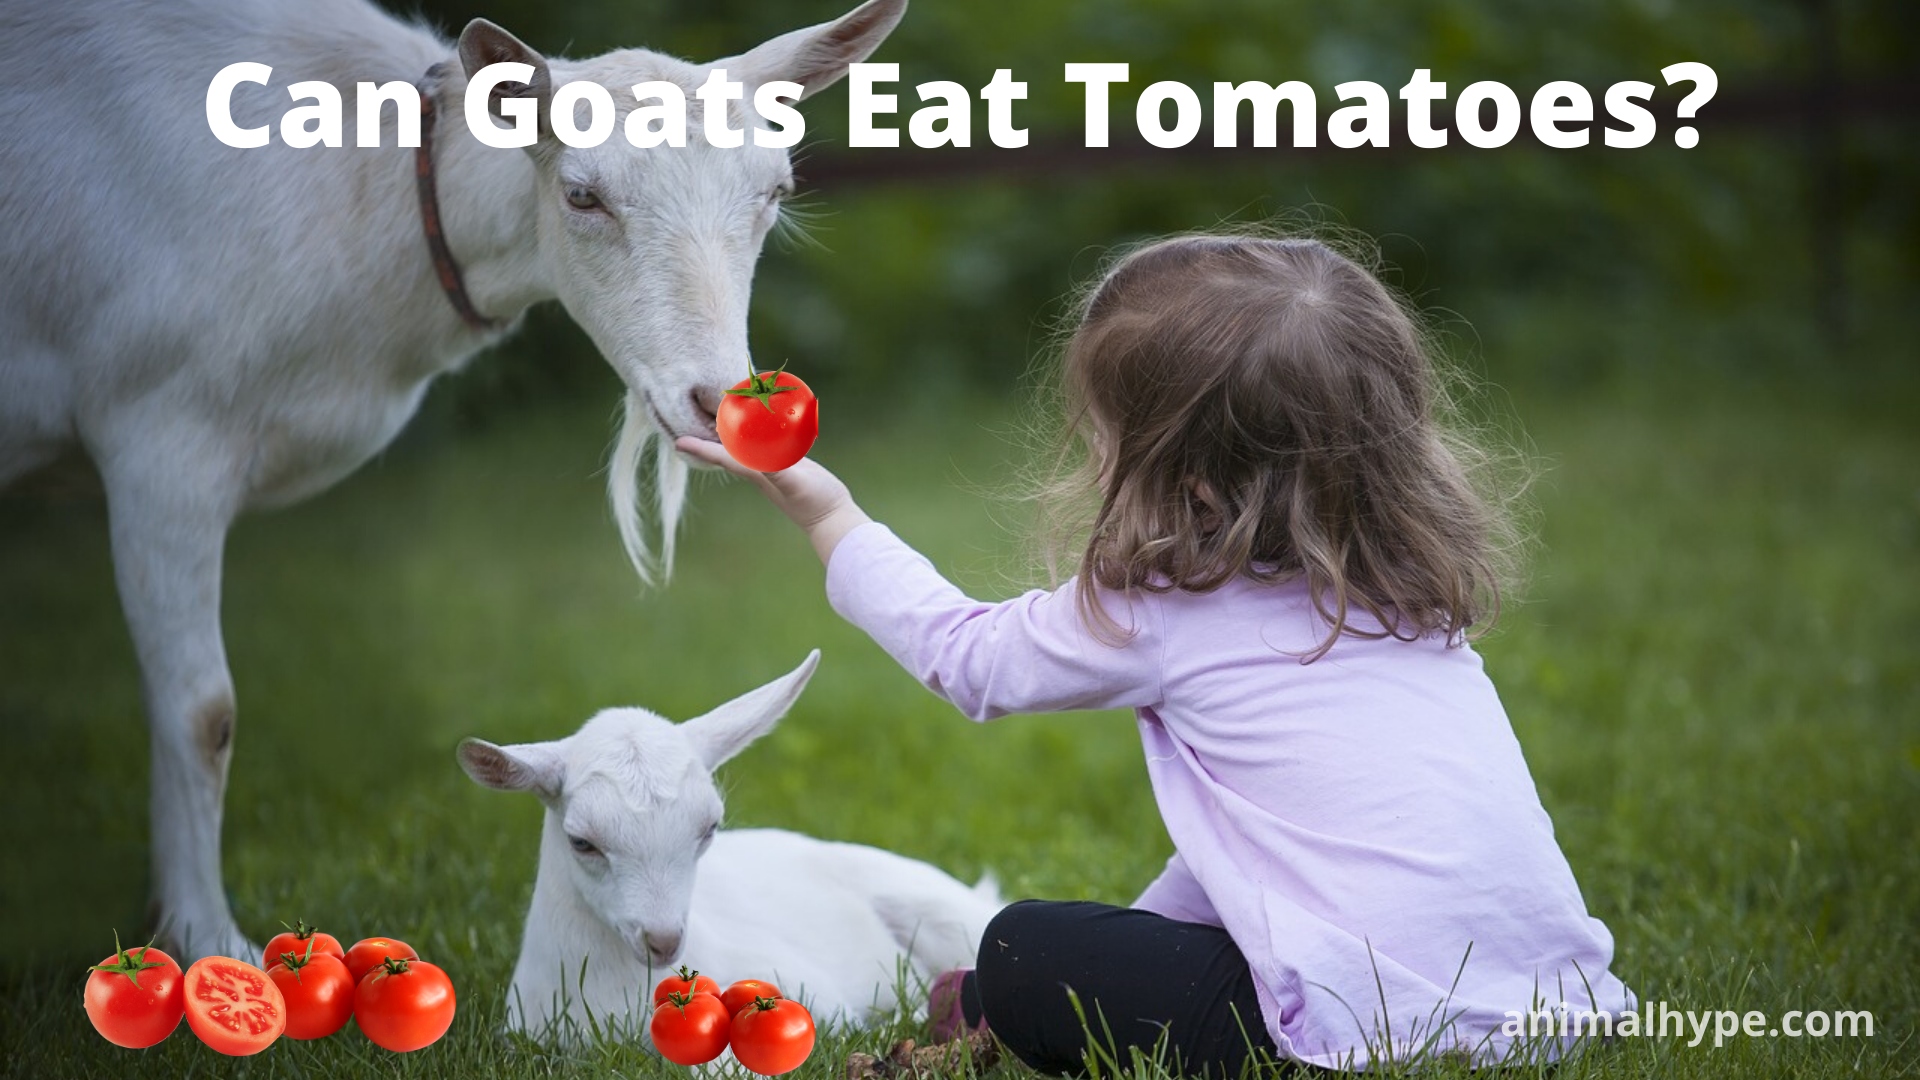 Can Goats Eat Tomatoes